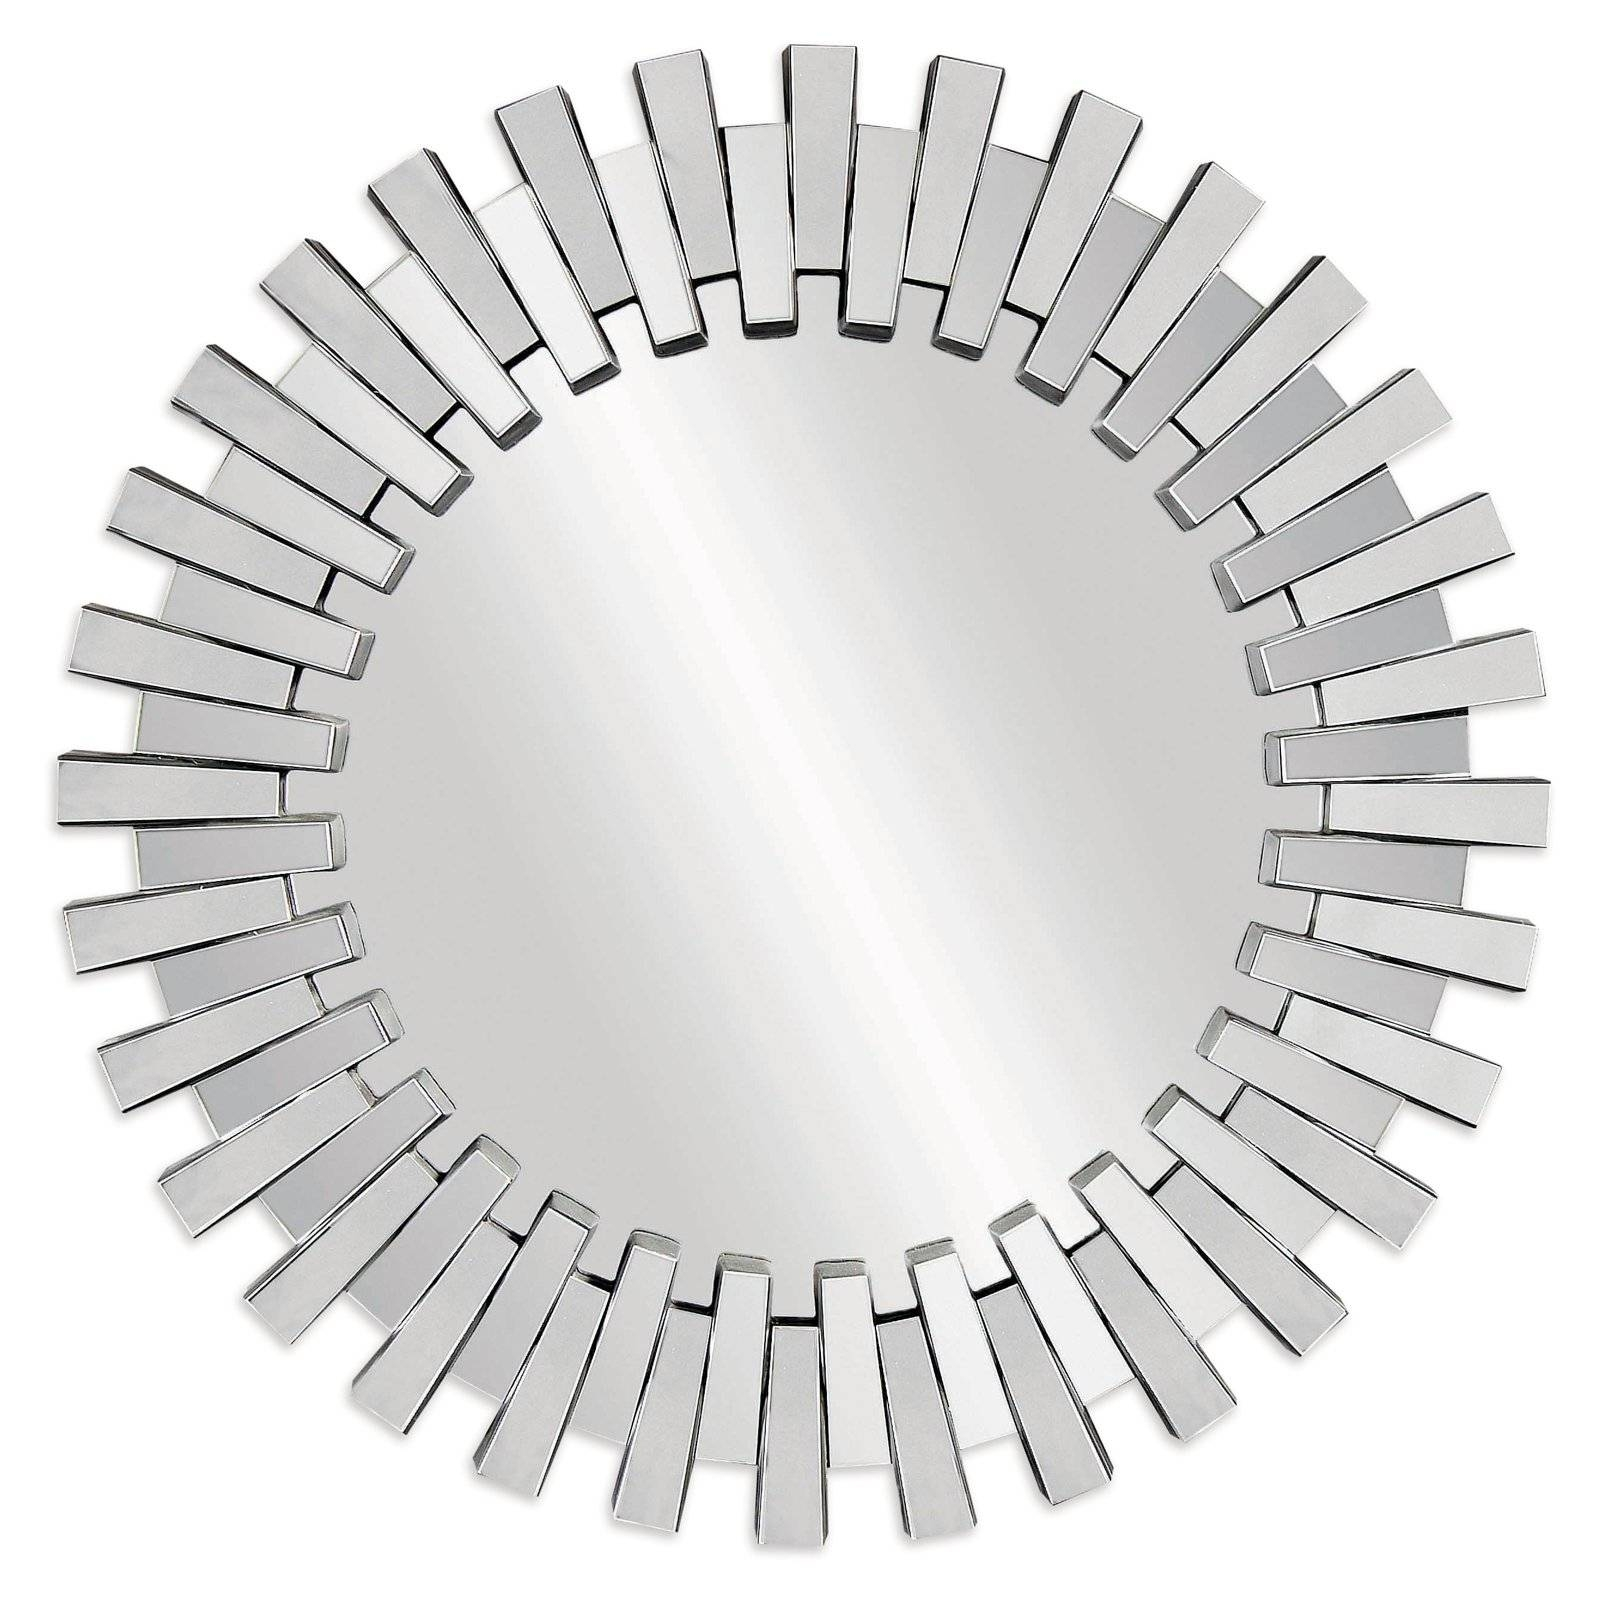 Afina Modern Luxe Round Wall Mirror - 36 In. | Hayneedle in Contemporary Round Mirrors (Image 4 of 25)